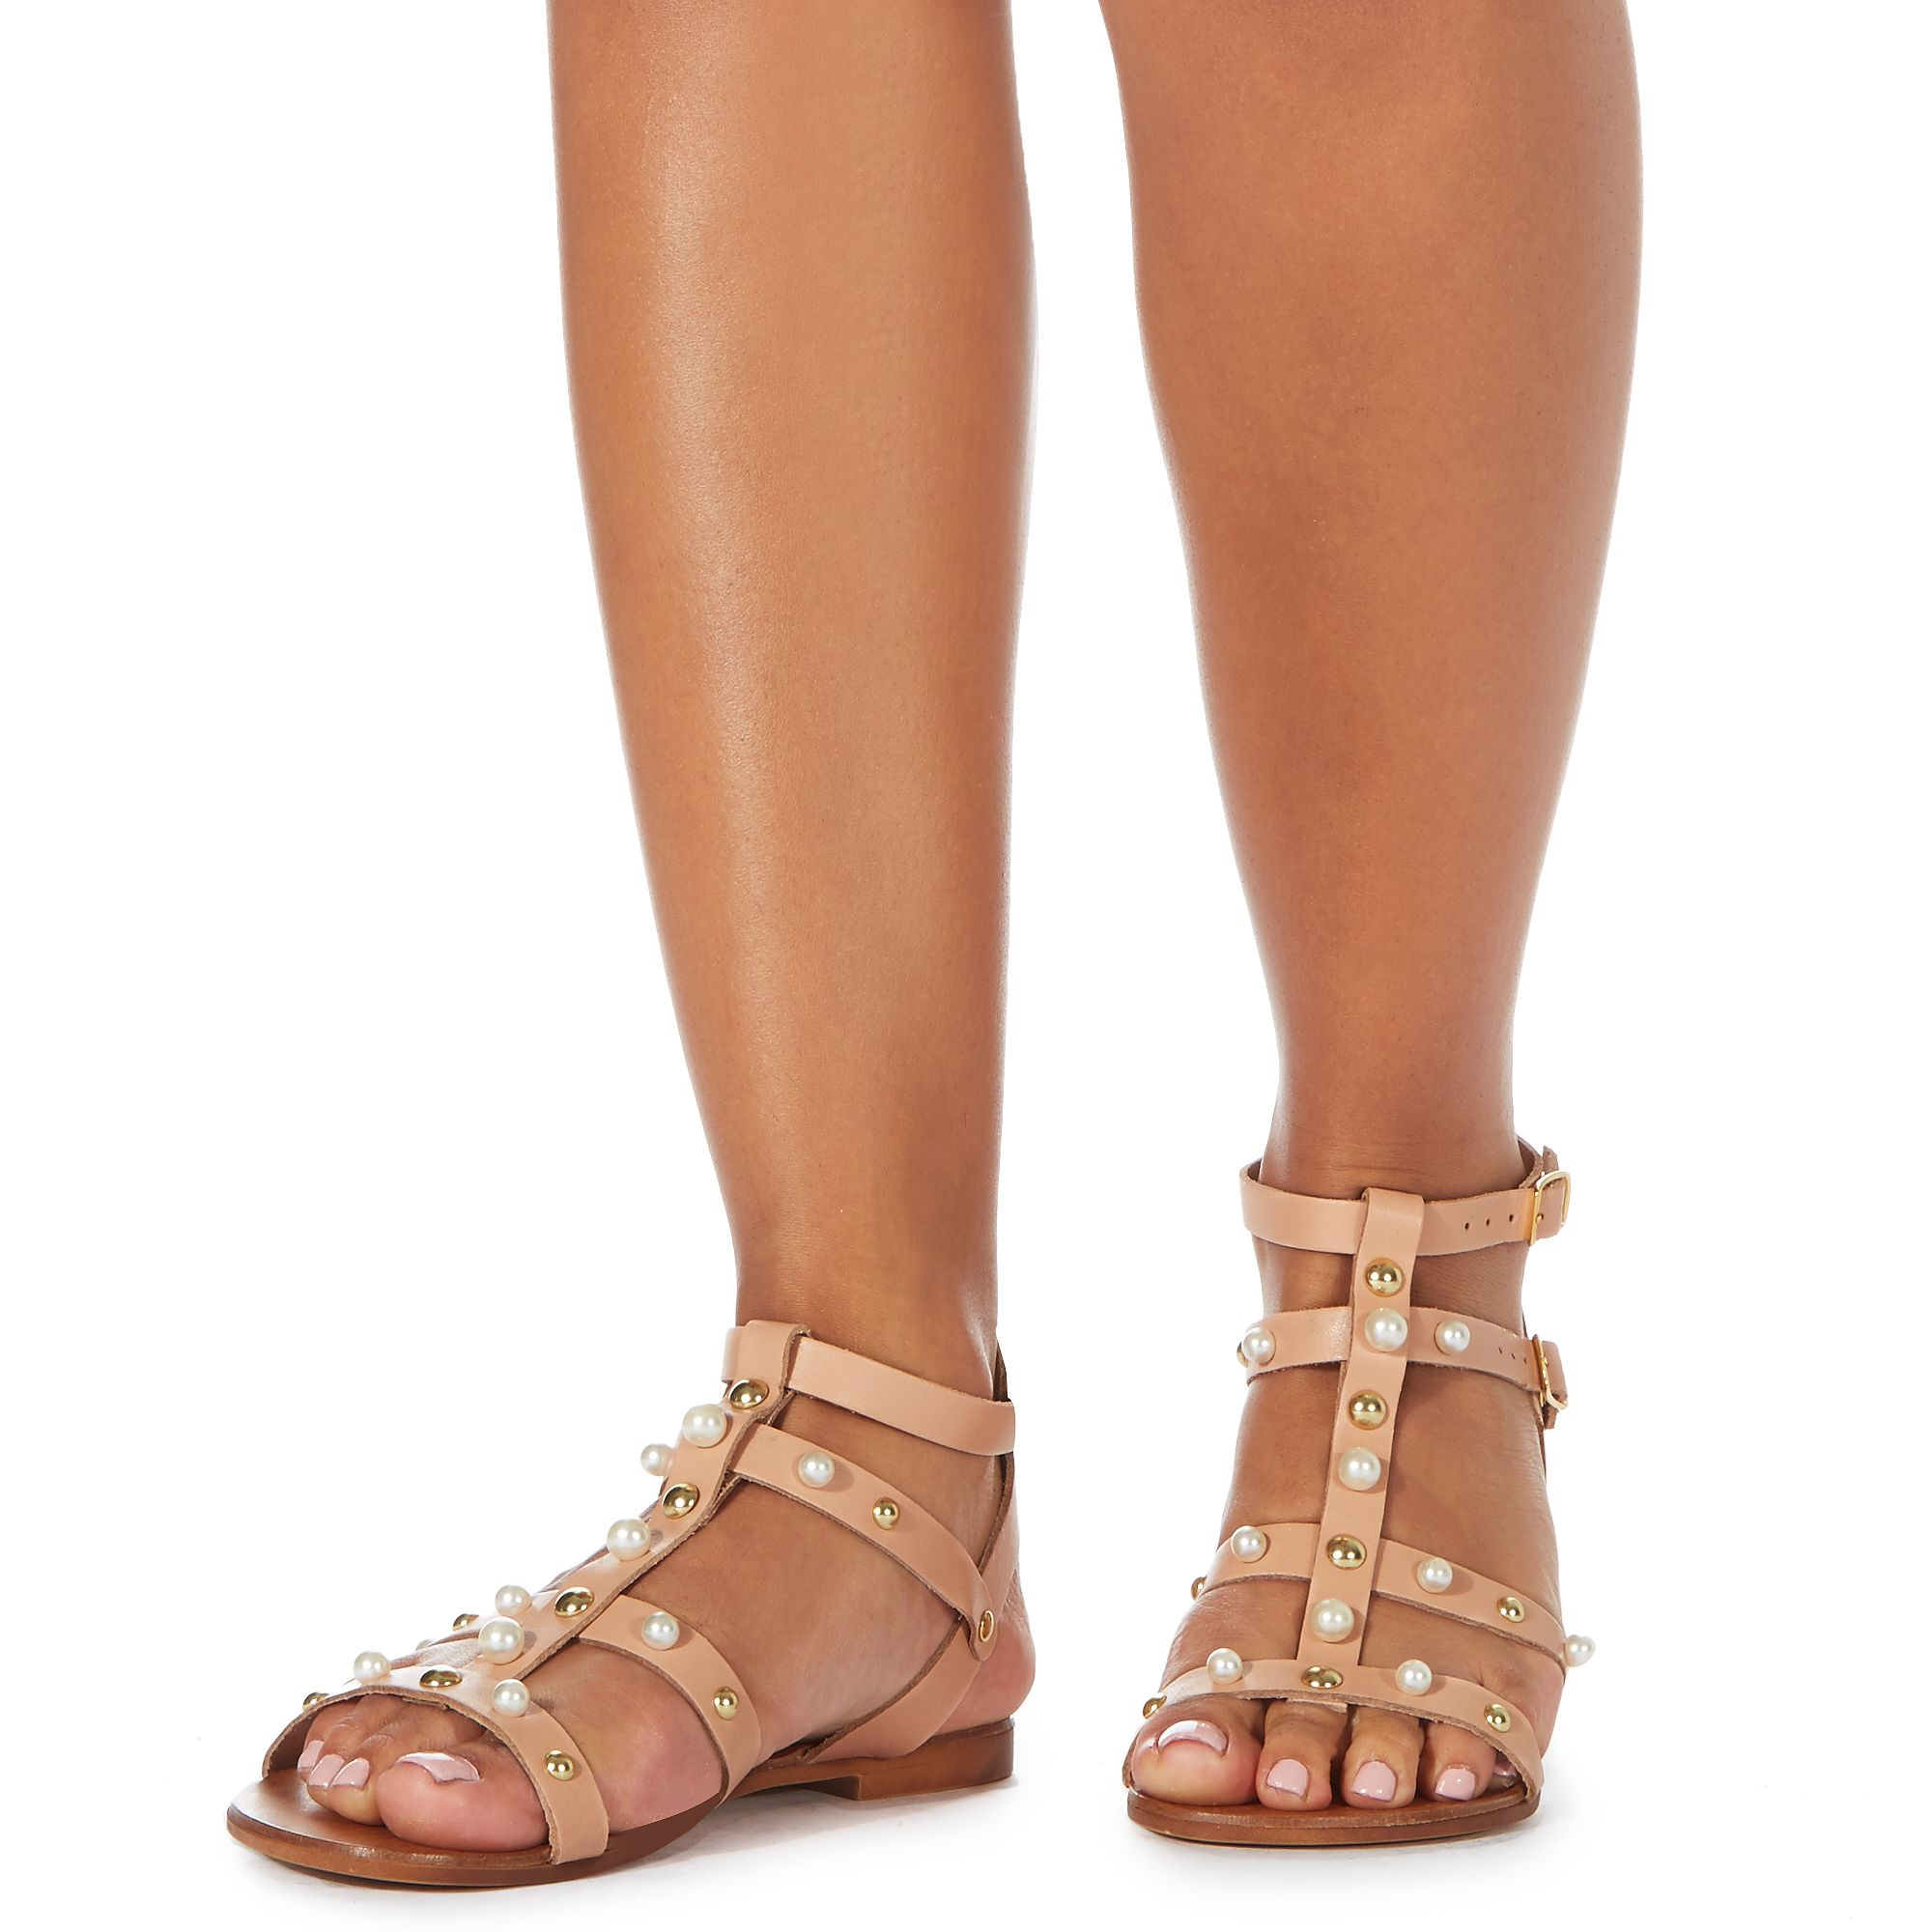 Women's sandals debenhams - Free Delivery On Orders Over 40 When You Add To Basket At The Top Of The Page